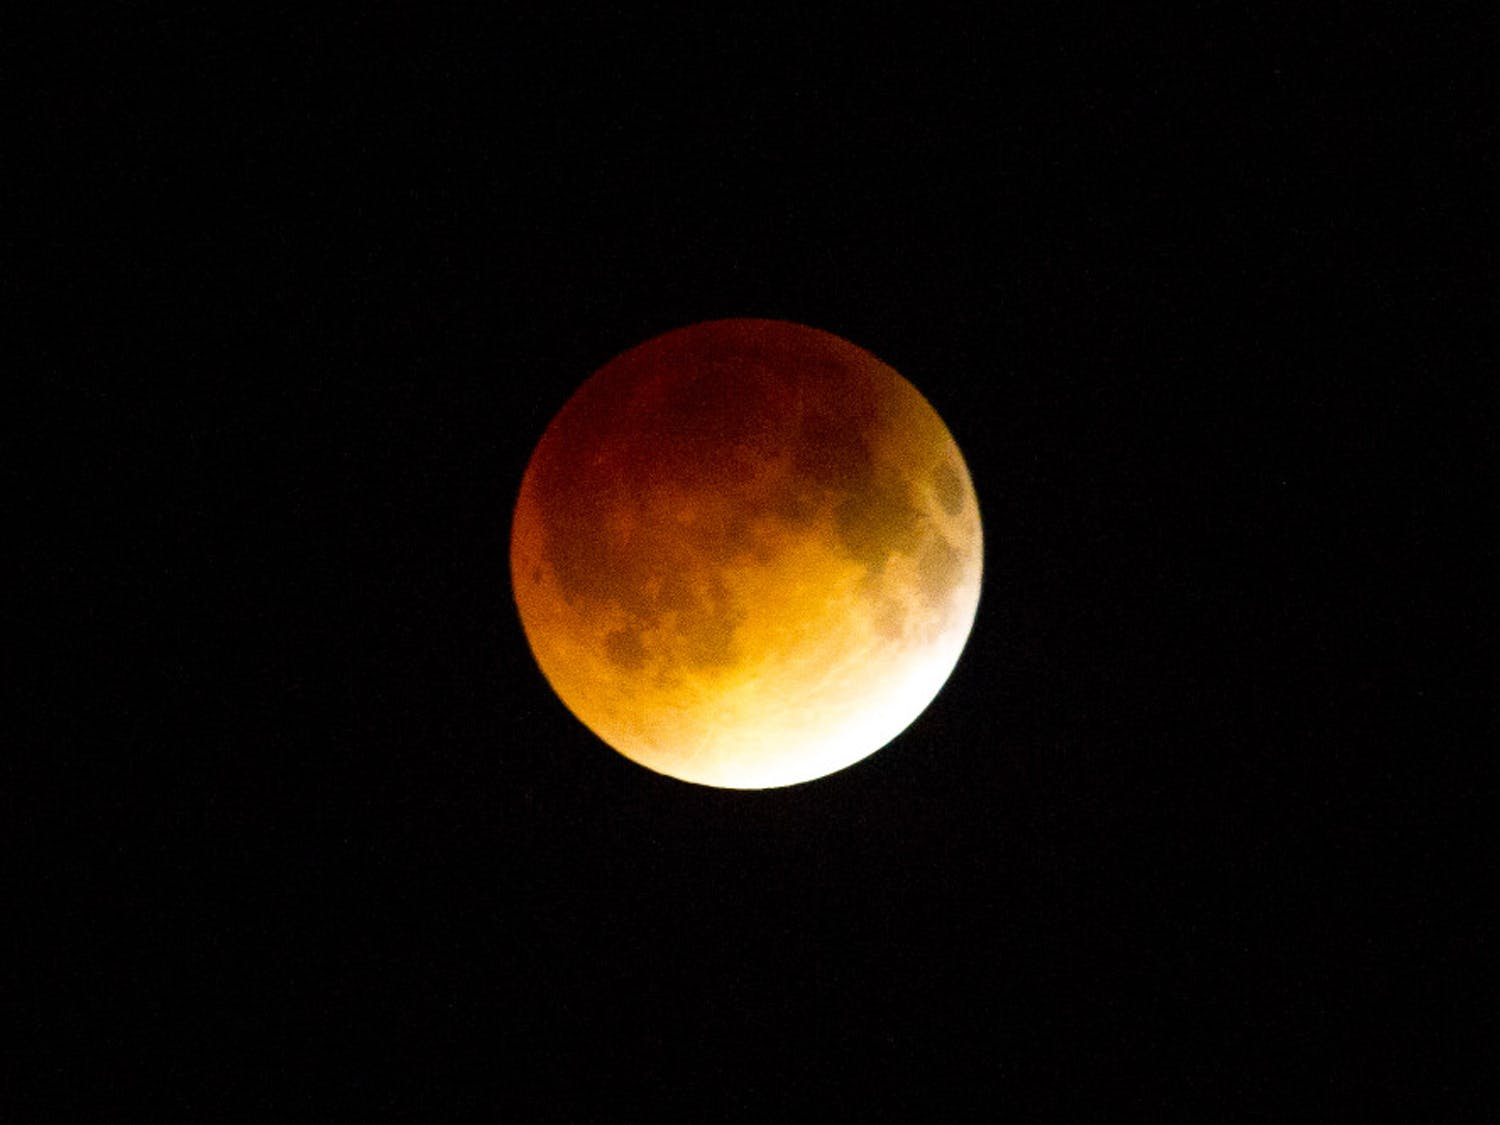 The blood moon, caused by a total lunar eclipse, was visible at about 3 a.m. today for the first time since 2010.